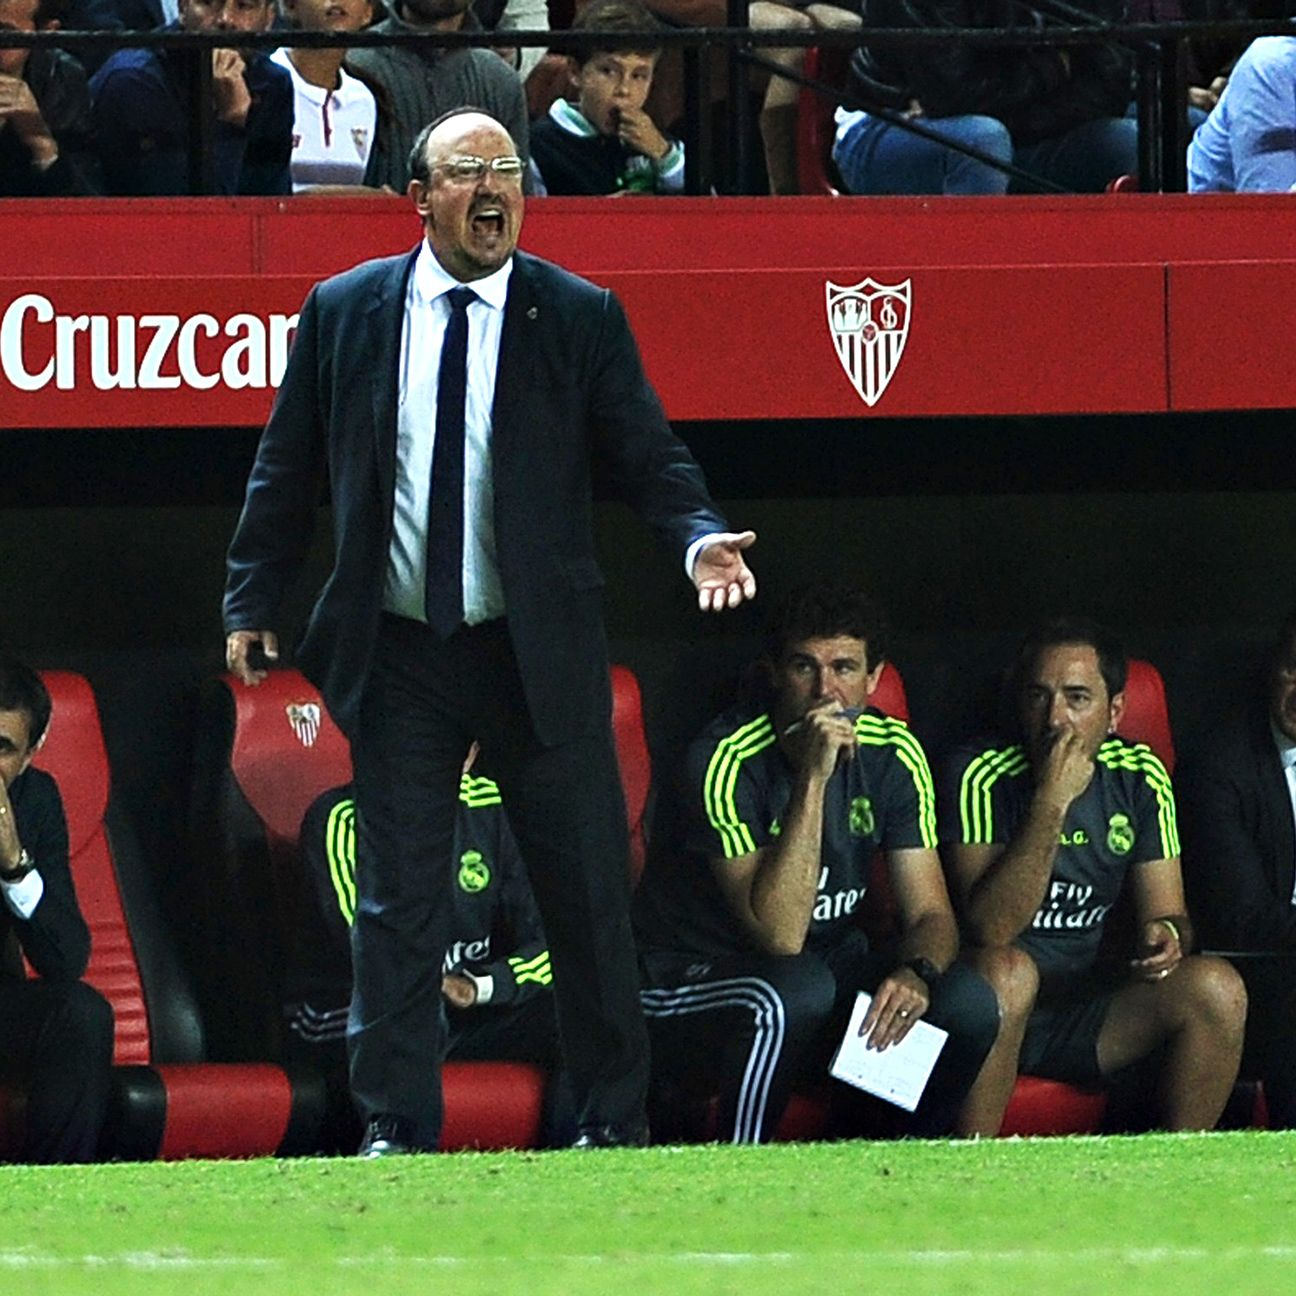 The pressure is on Rafa Benitez to get Real Madrid back to their winning ways.